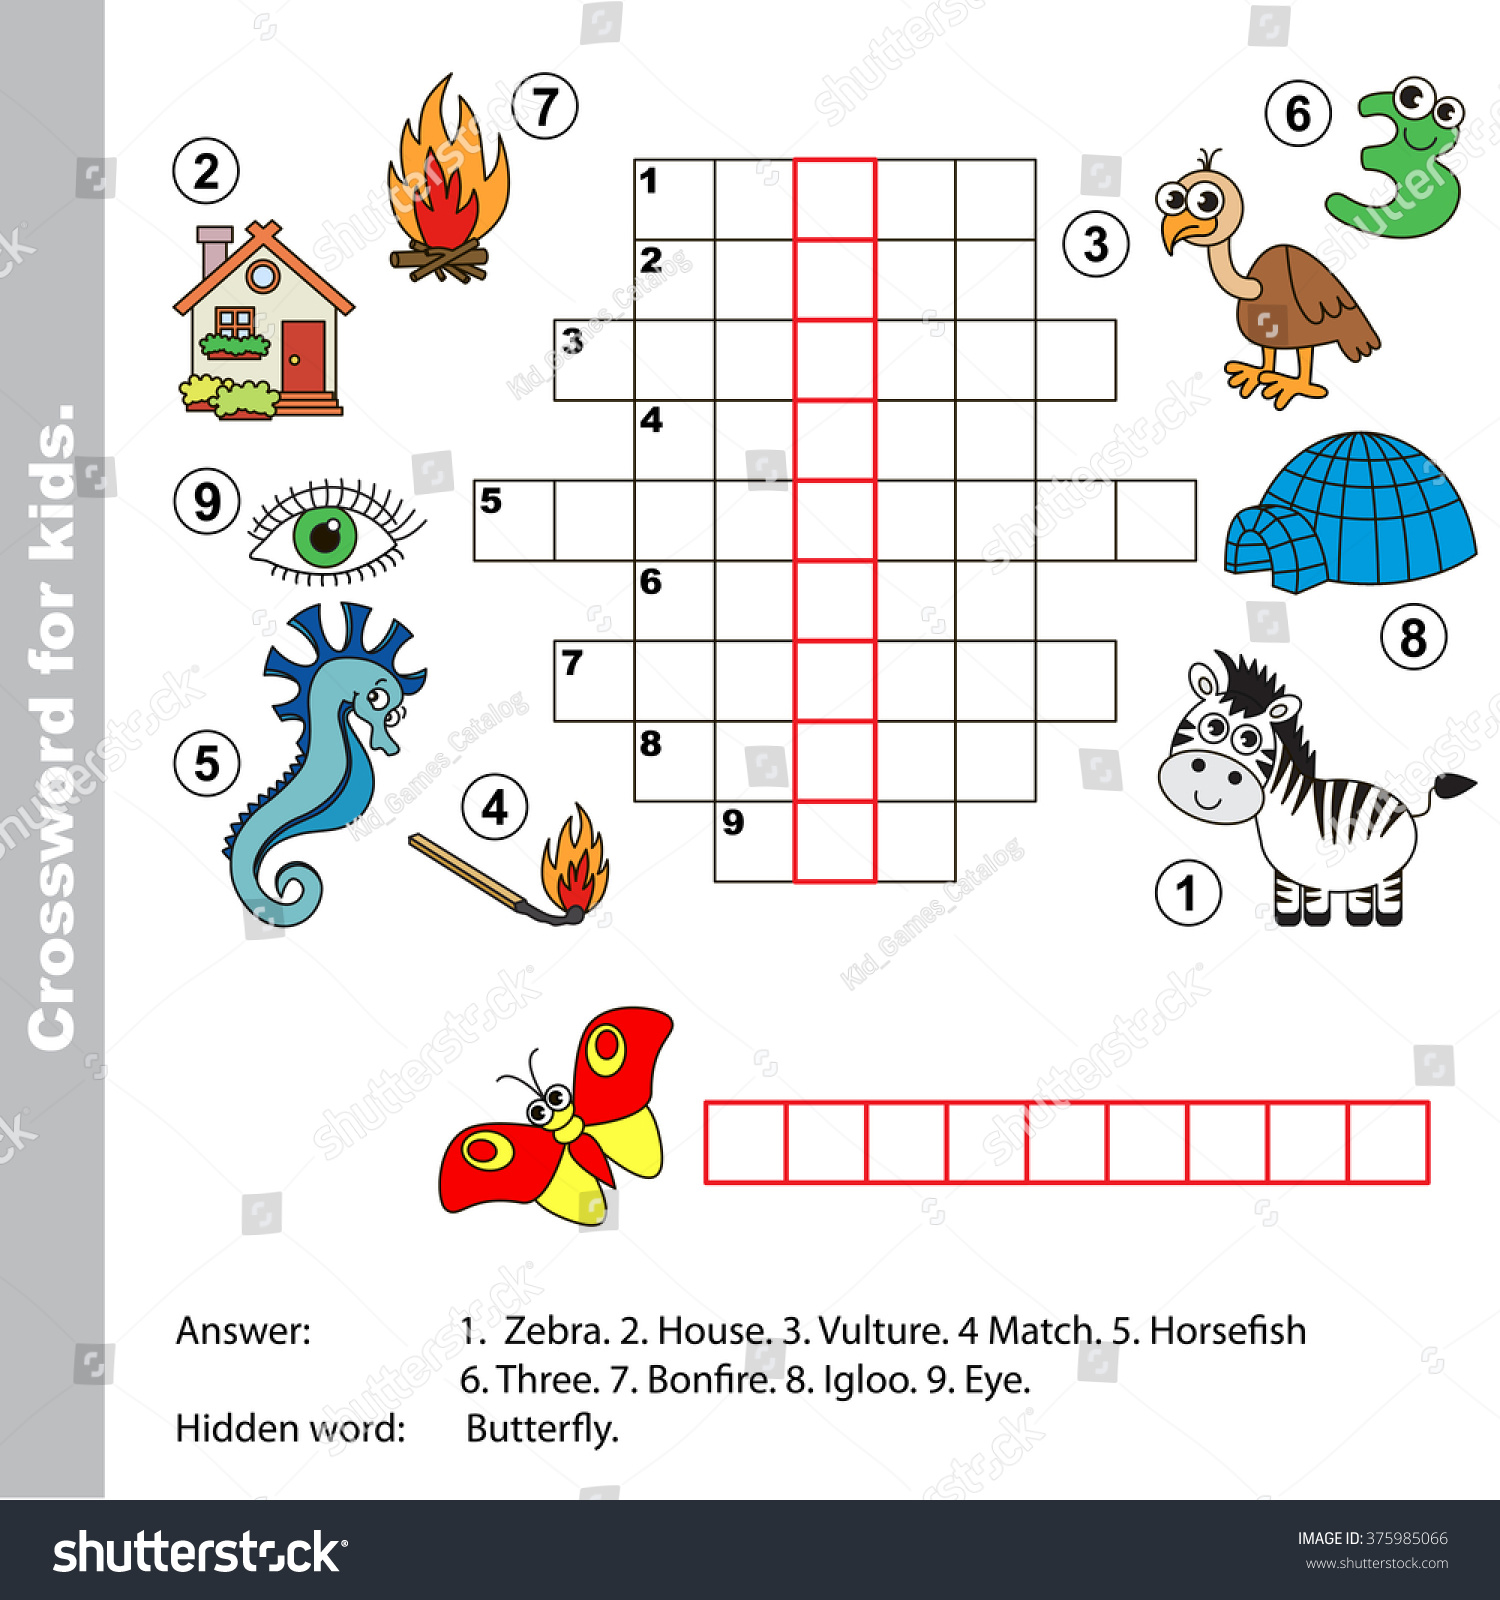 Interesting Crossword For Kids Task And Answer Colorful